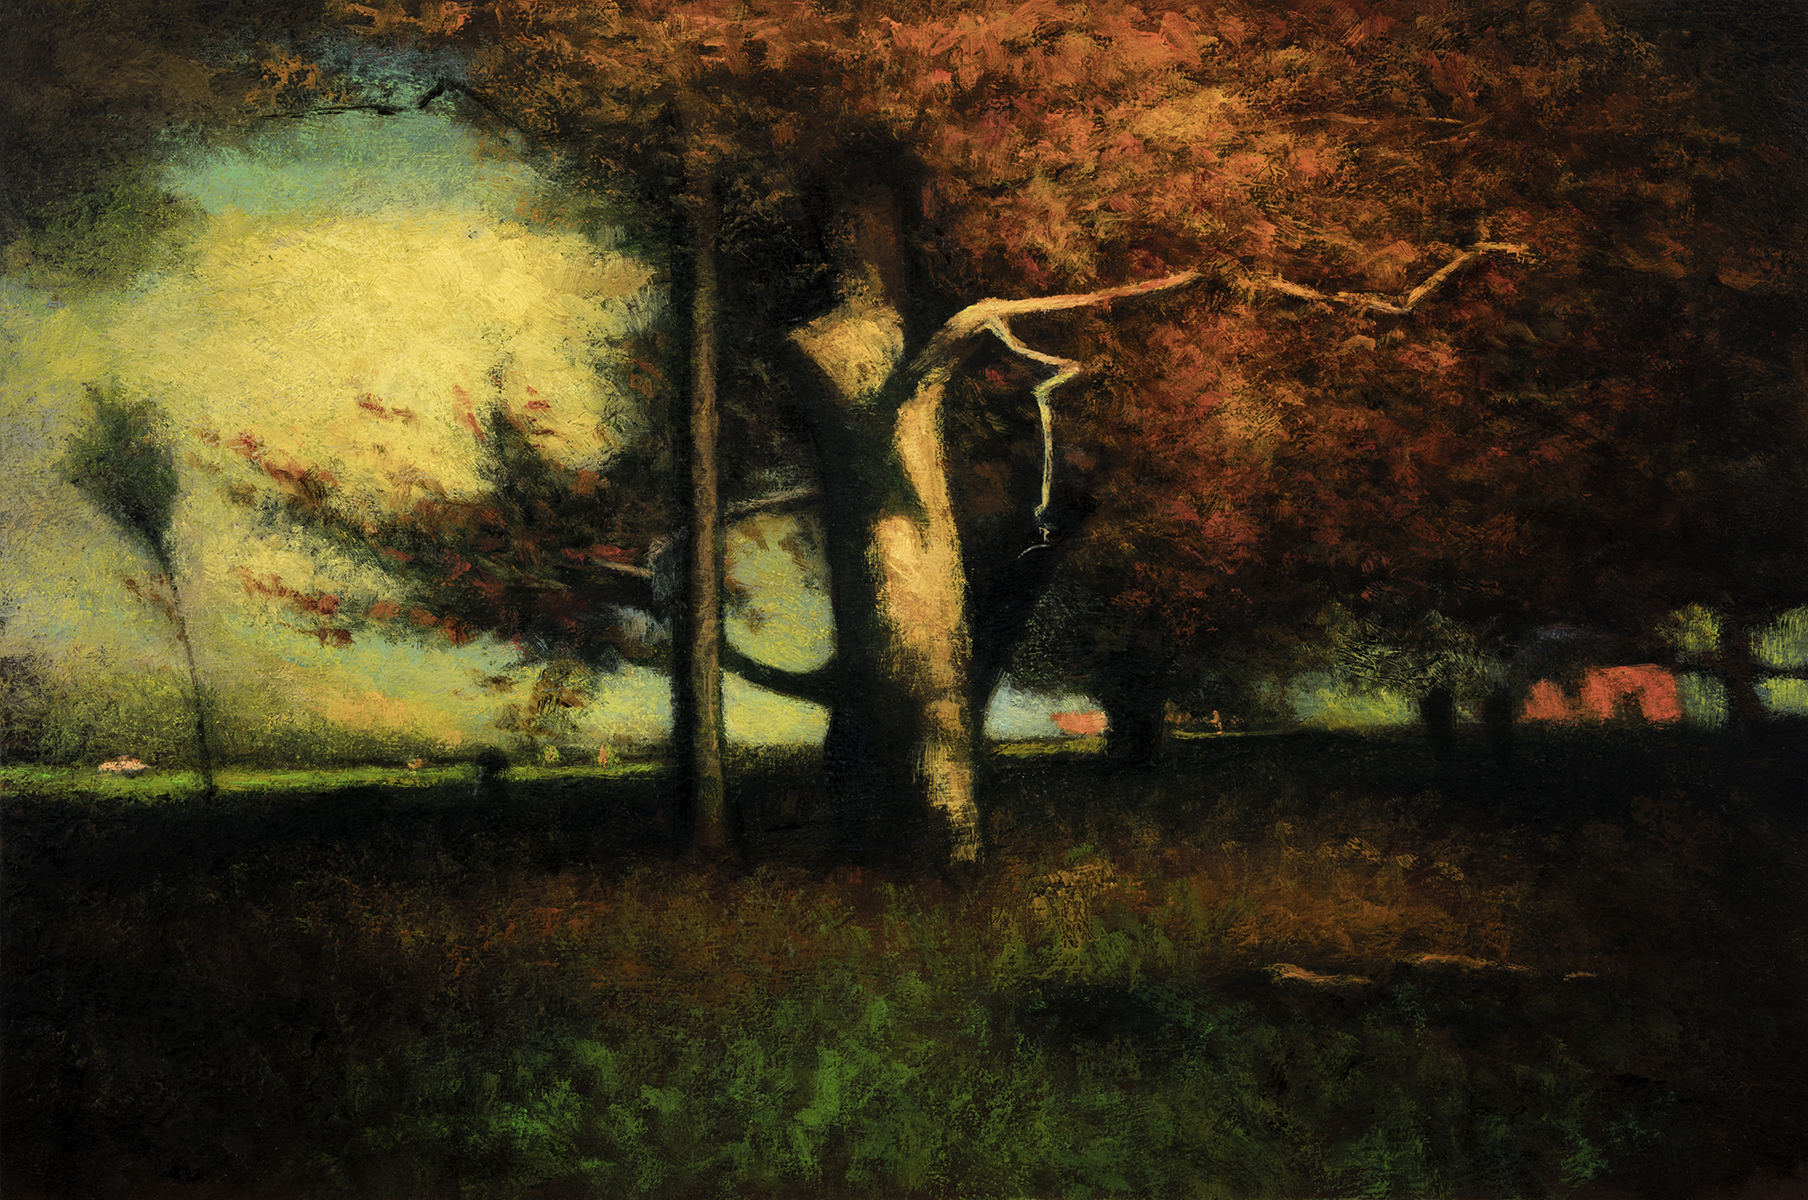 Study after: George Inness Autumn Montclair by M Francis McCarthy - 8x12 Oil on Wood Panel